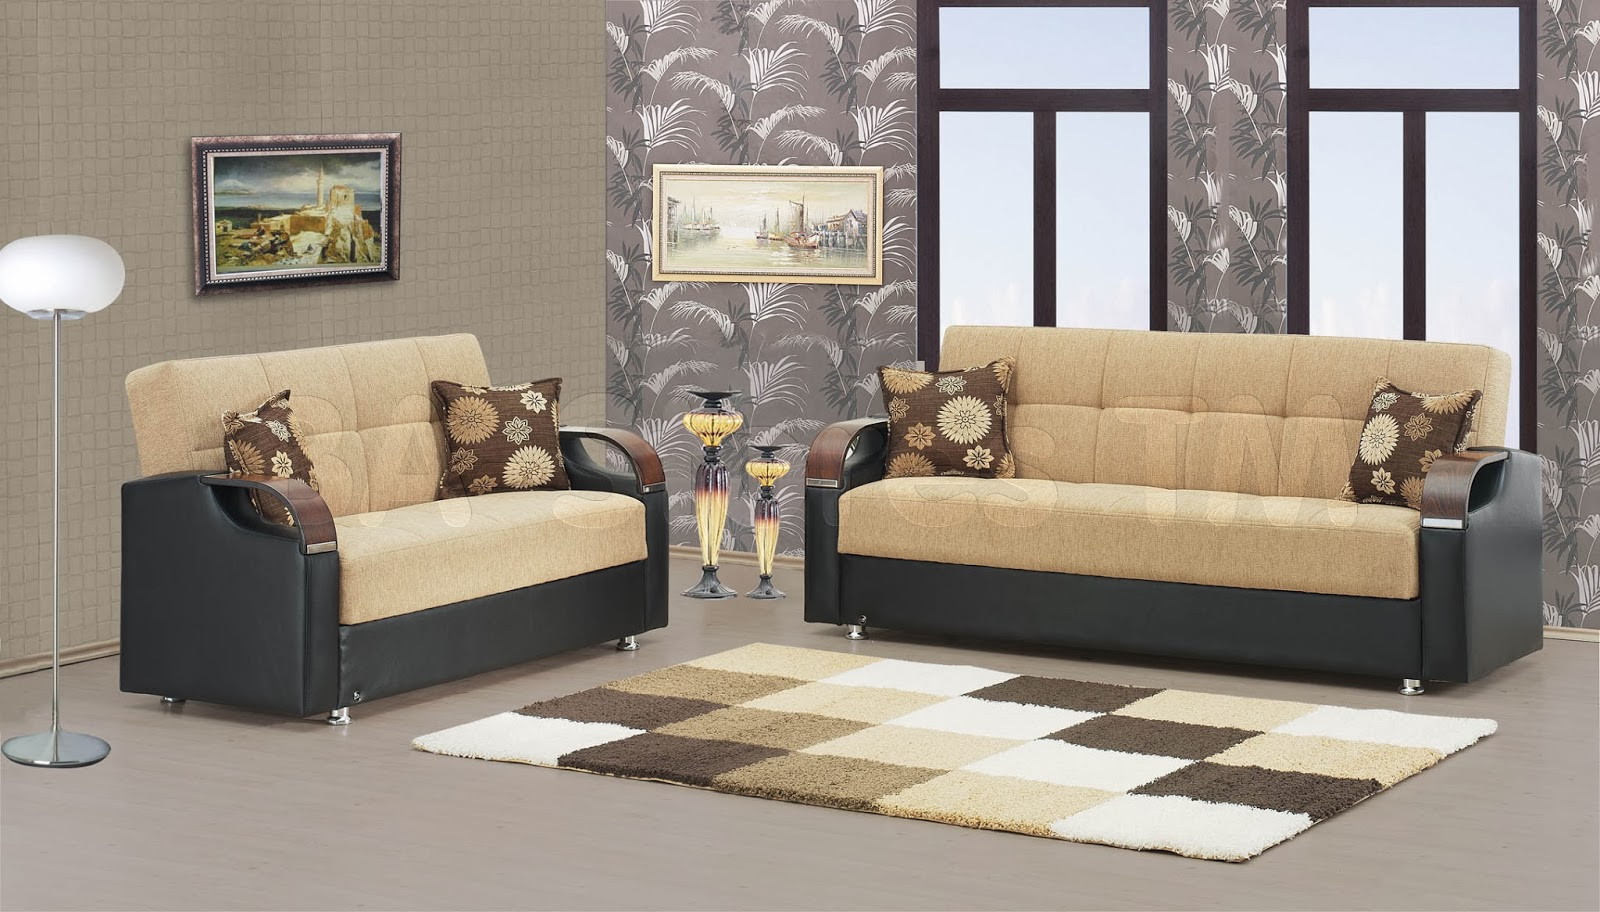 9 Seater Sofa Set Designs With Price New Fashion In Sofa Set Design 2014